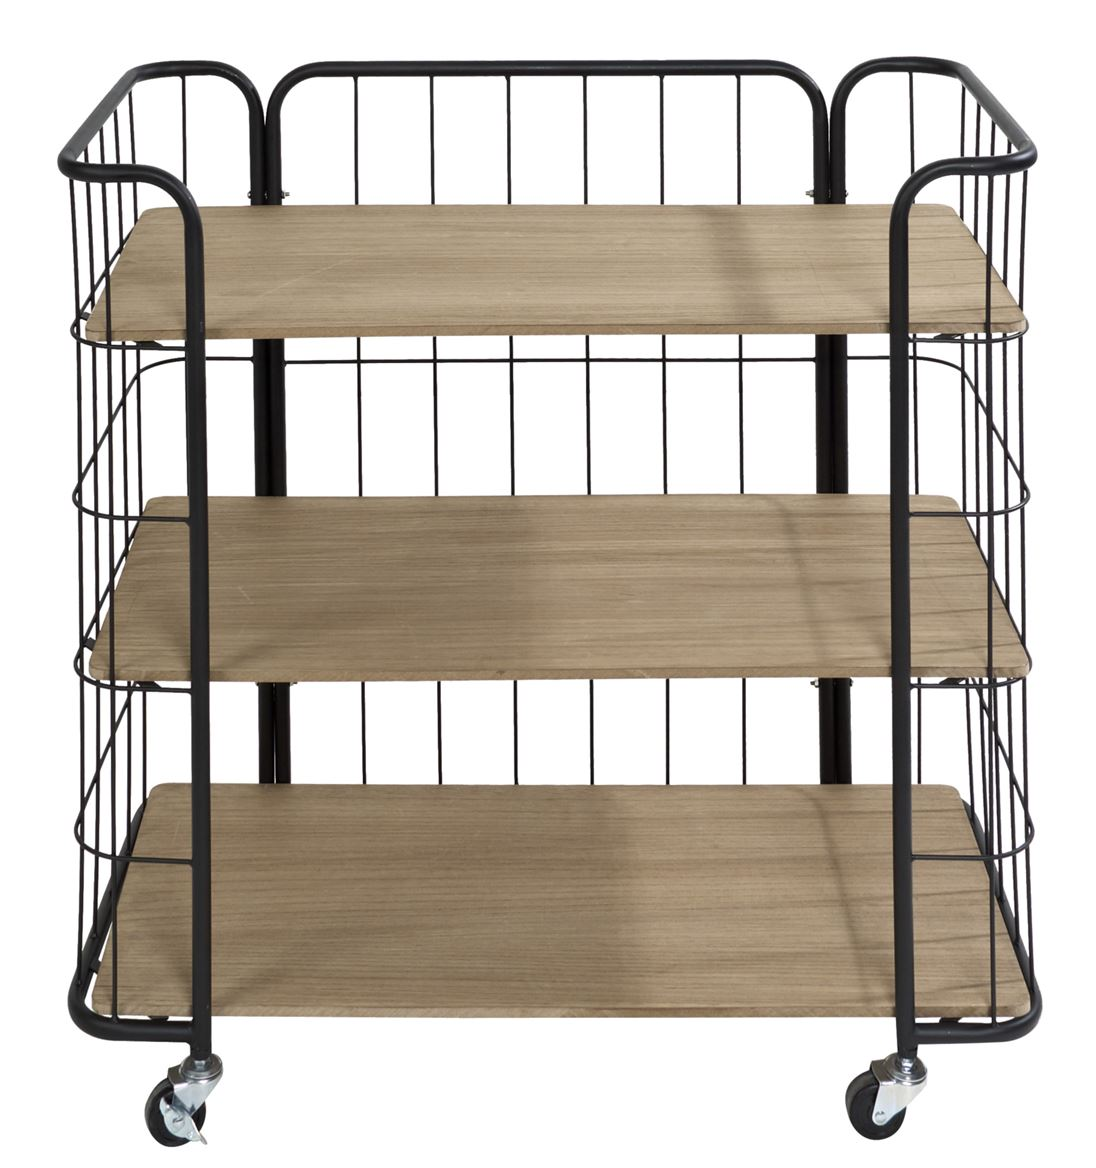 OSLO Étagère trolley 3 tablettes noir, naturel H 82 x Long. 83 x P 40 cm_oslo-étagère-trolley-3-tablettes-noir,-naturel-h-82-x-long--83-x-p-40-cm